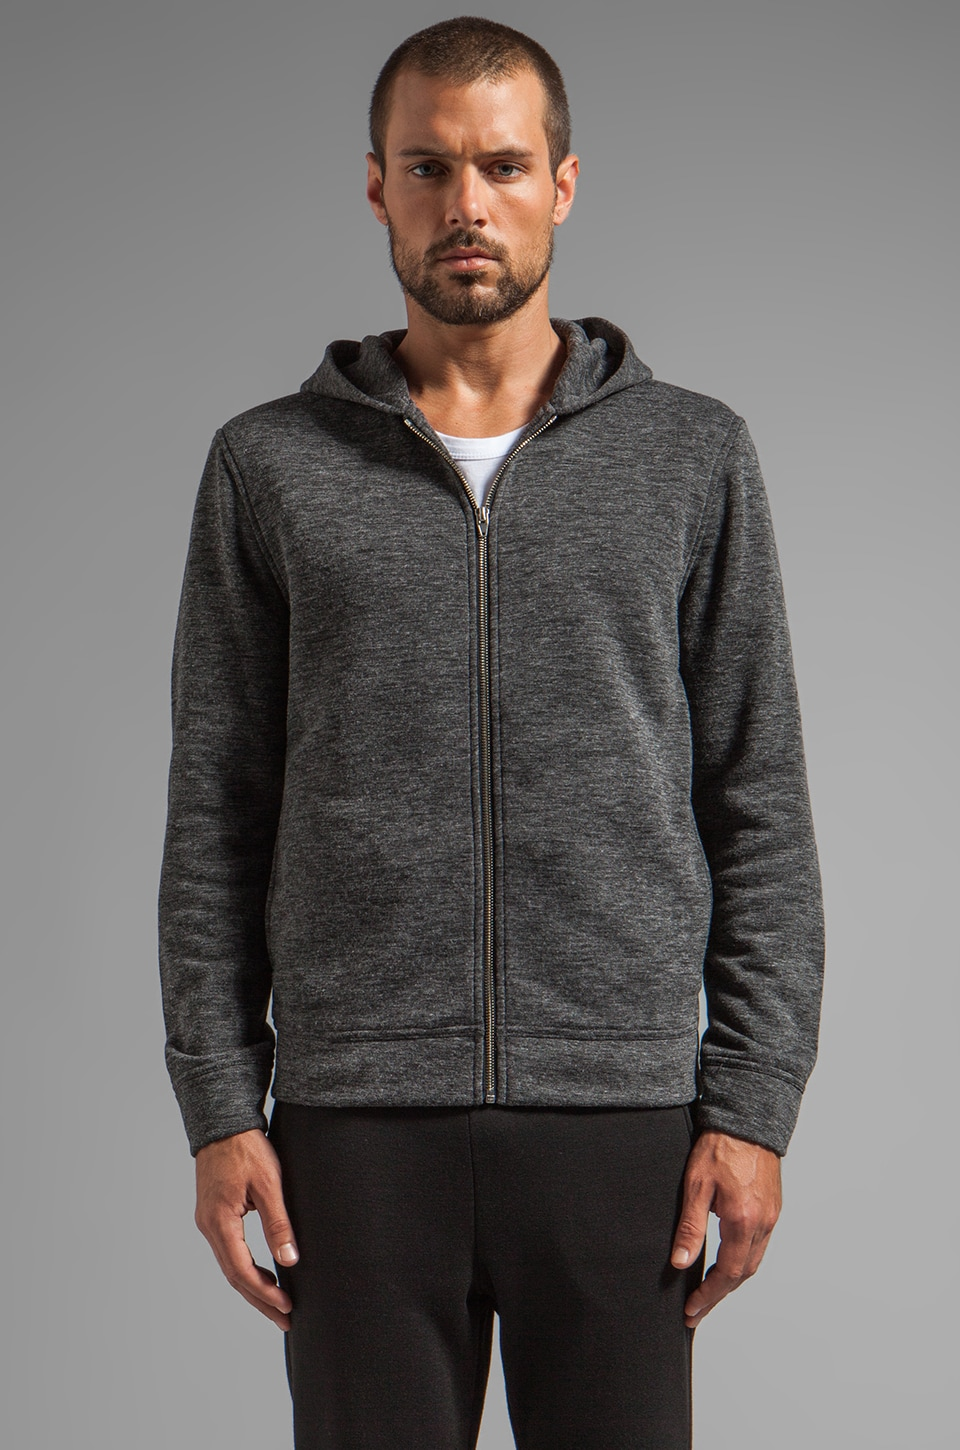 T by Alexander Wang Fleece ZIp Up Hoodie in Charcoal